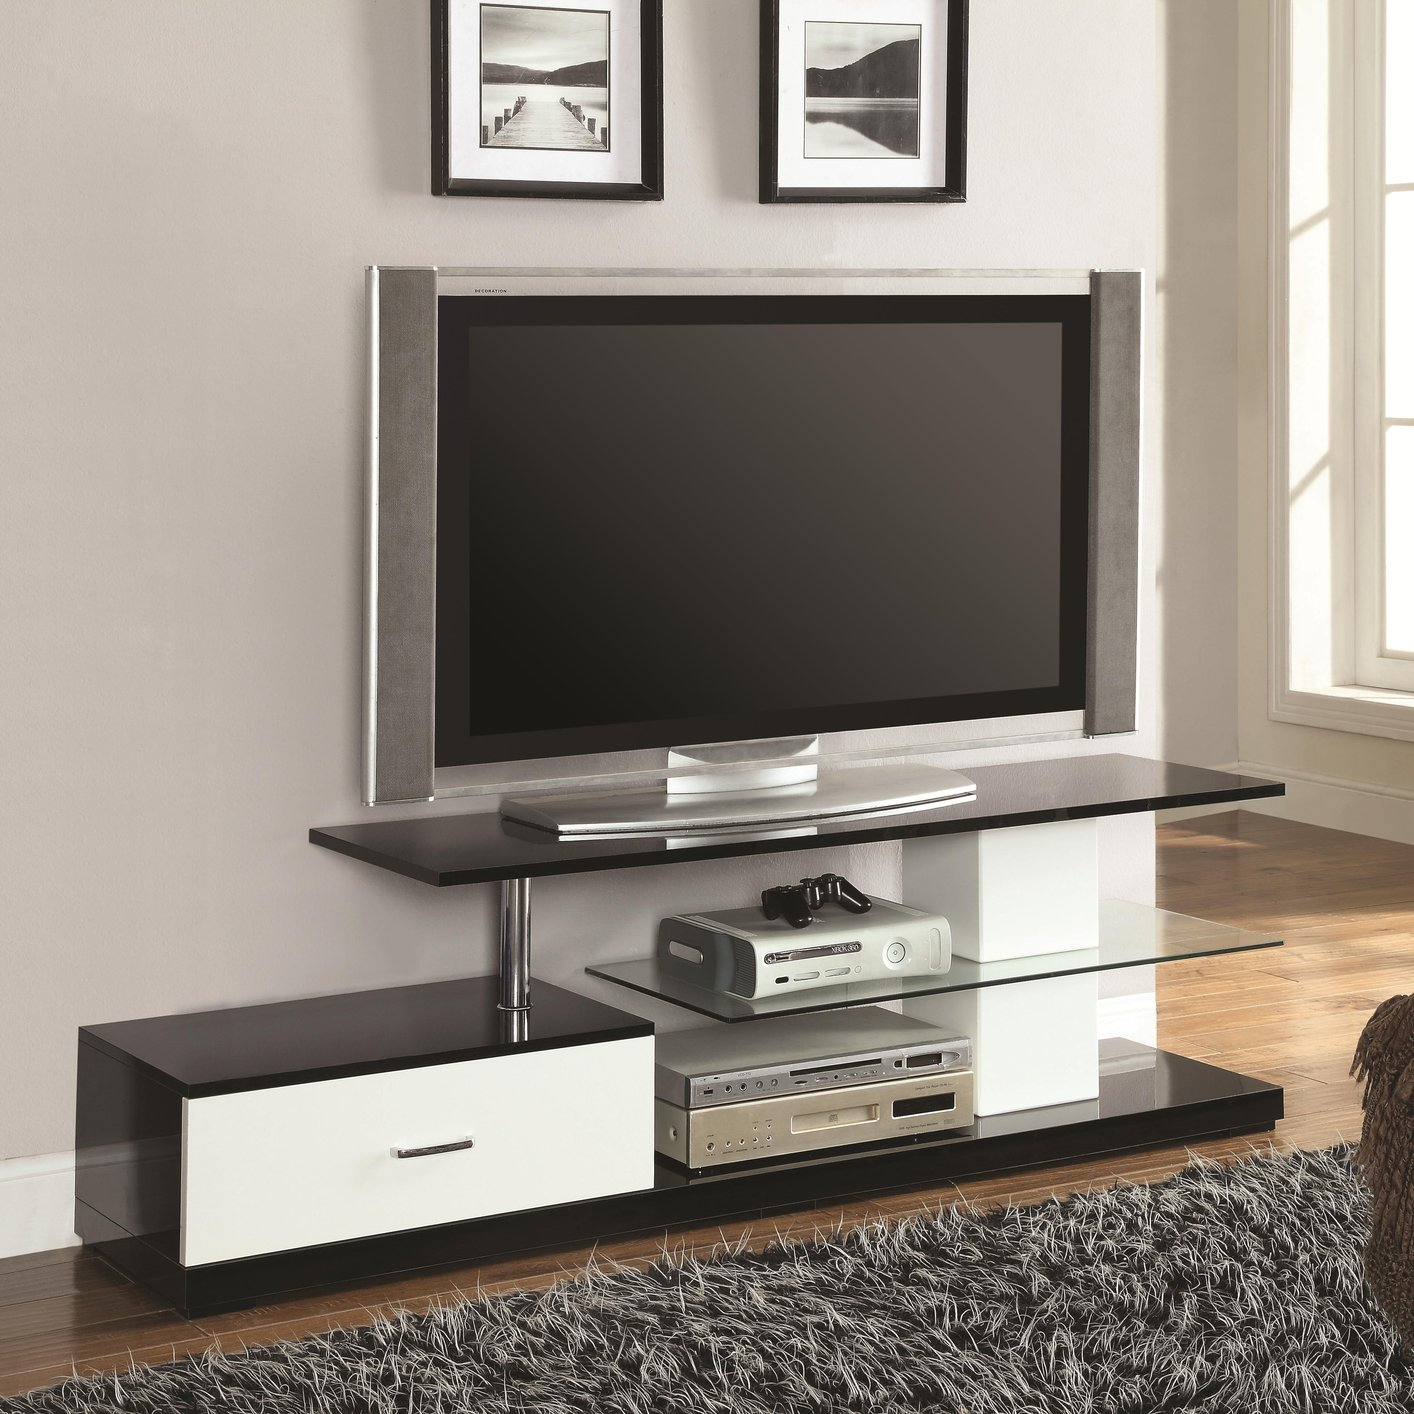 coaster 700733 black glass tv stand steal a sofa furniture outlet los angeles ca. Black Bedroom Furniture Sets. Home Design Ideas